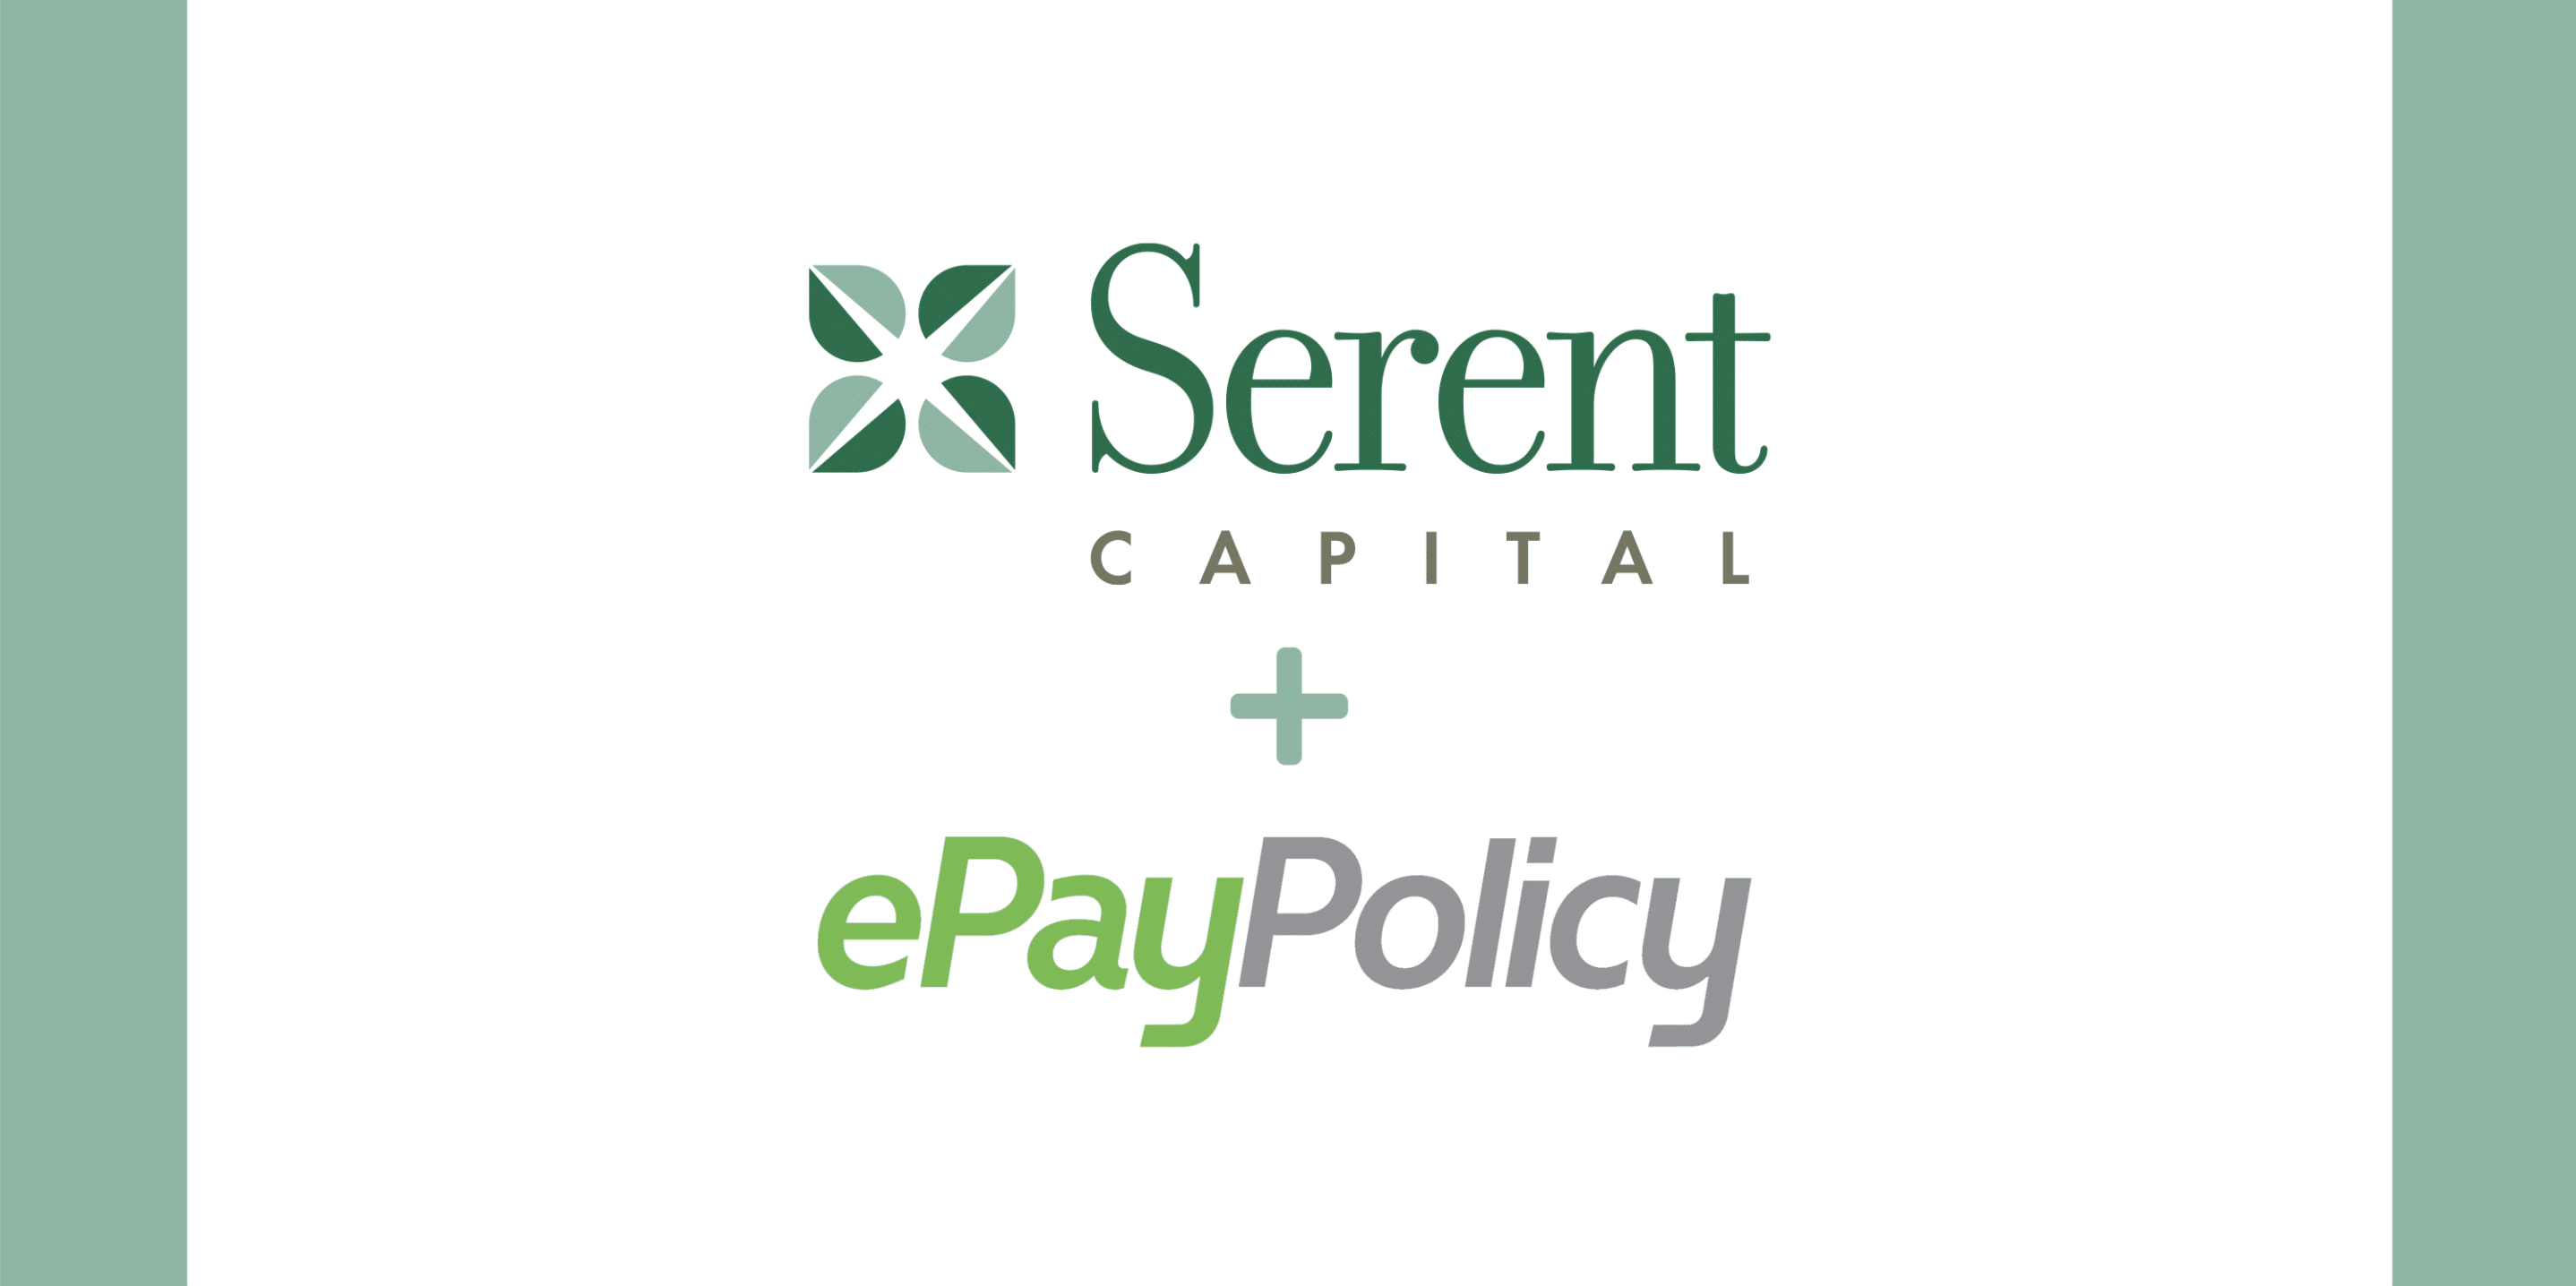 ePayPolicy, a market-leading electronic payments solution for the excess & surplus insurance market, announces investment from Serent Capital